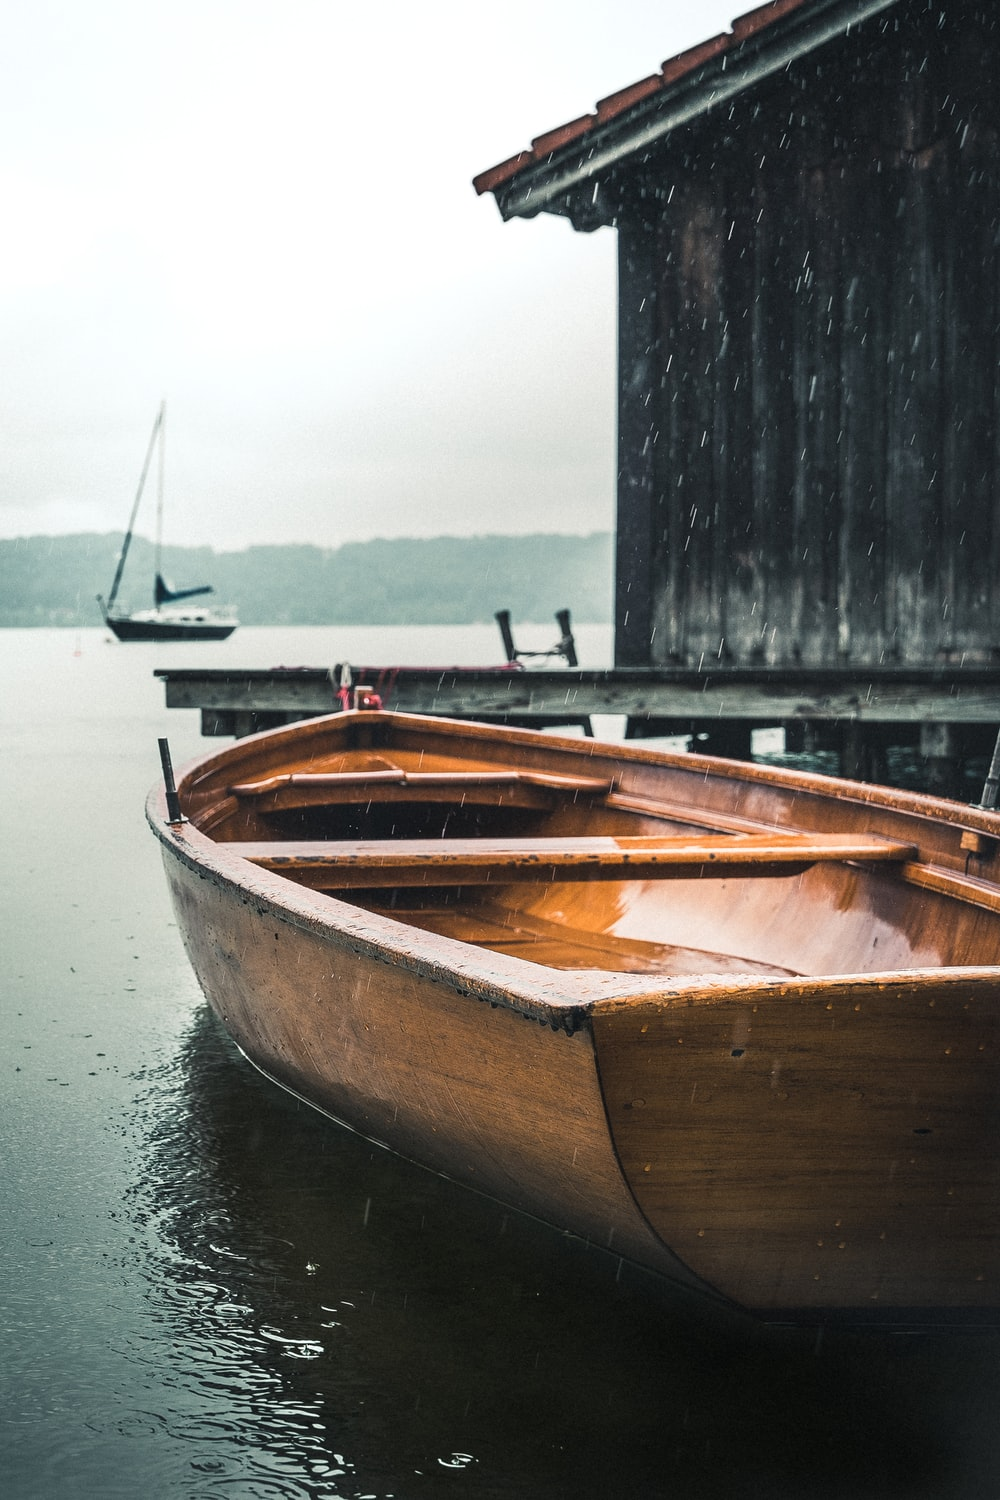 brown wooden boat on water during daytime